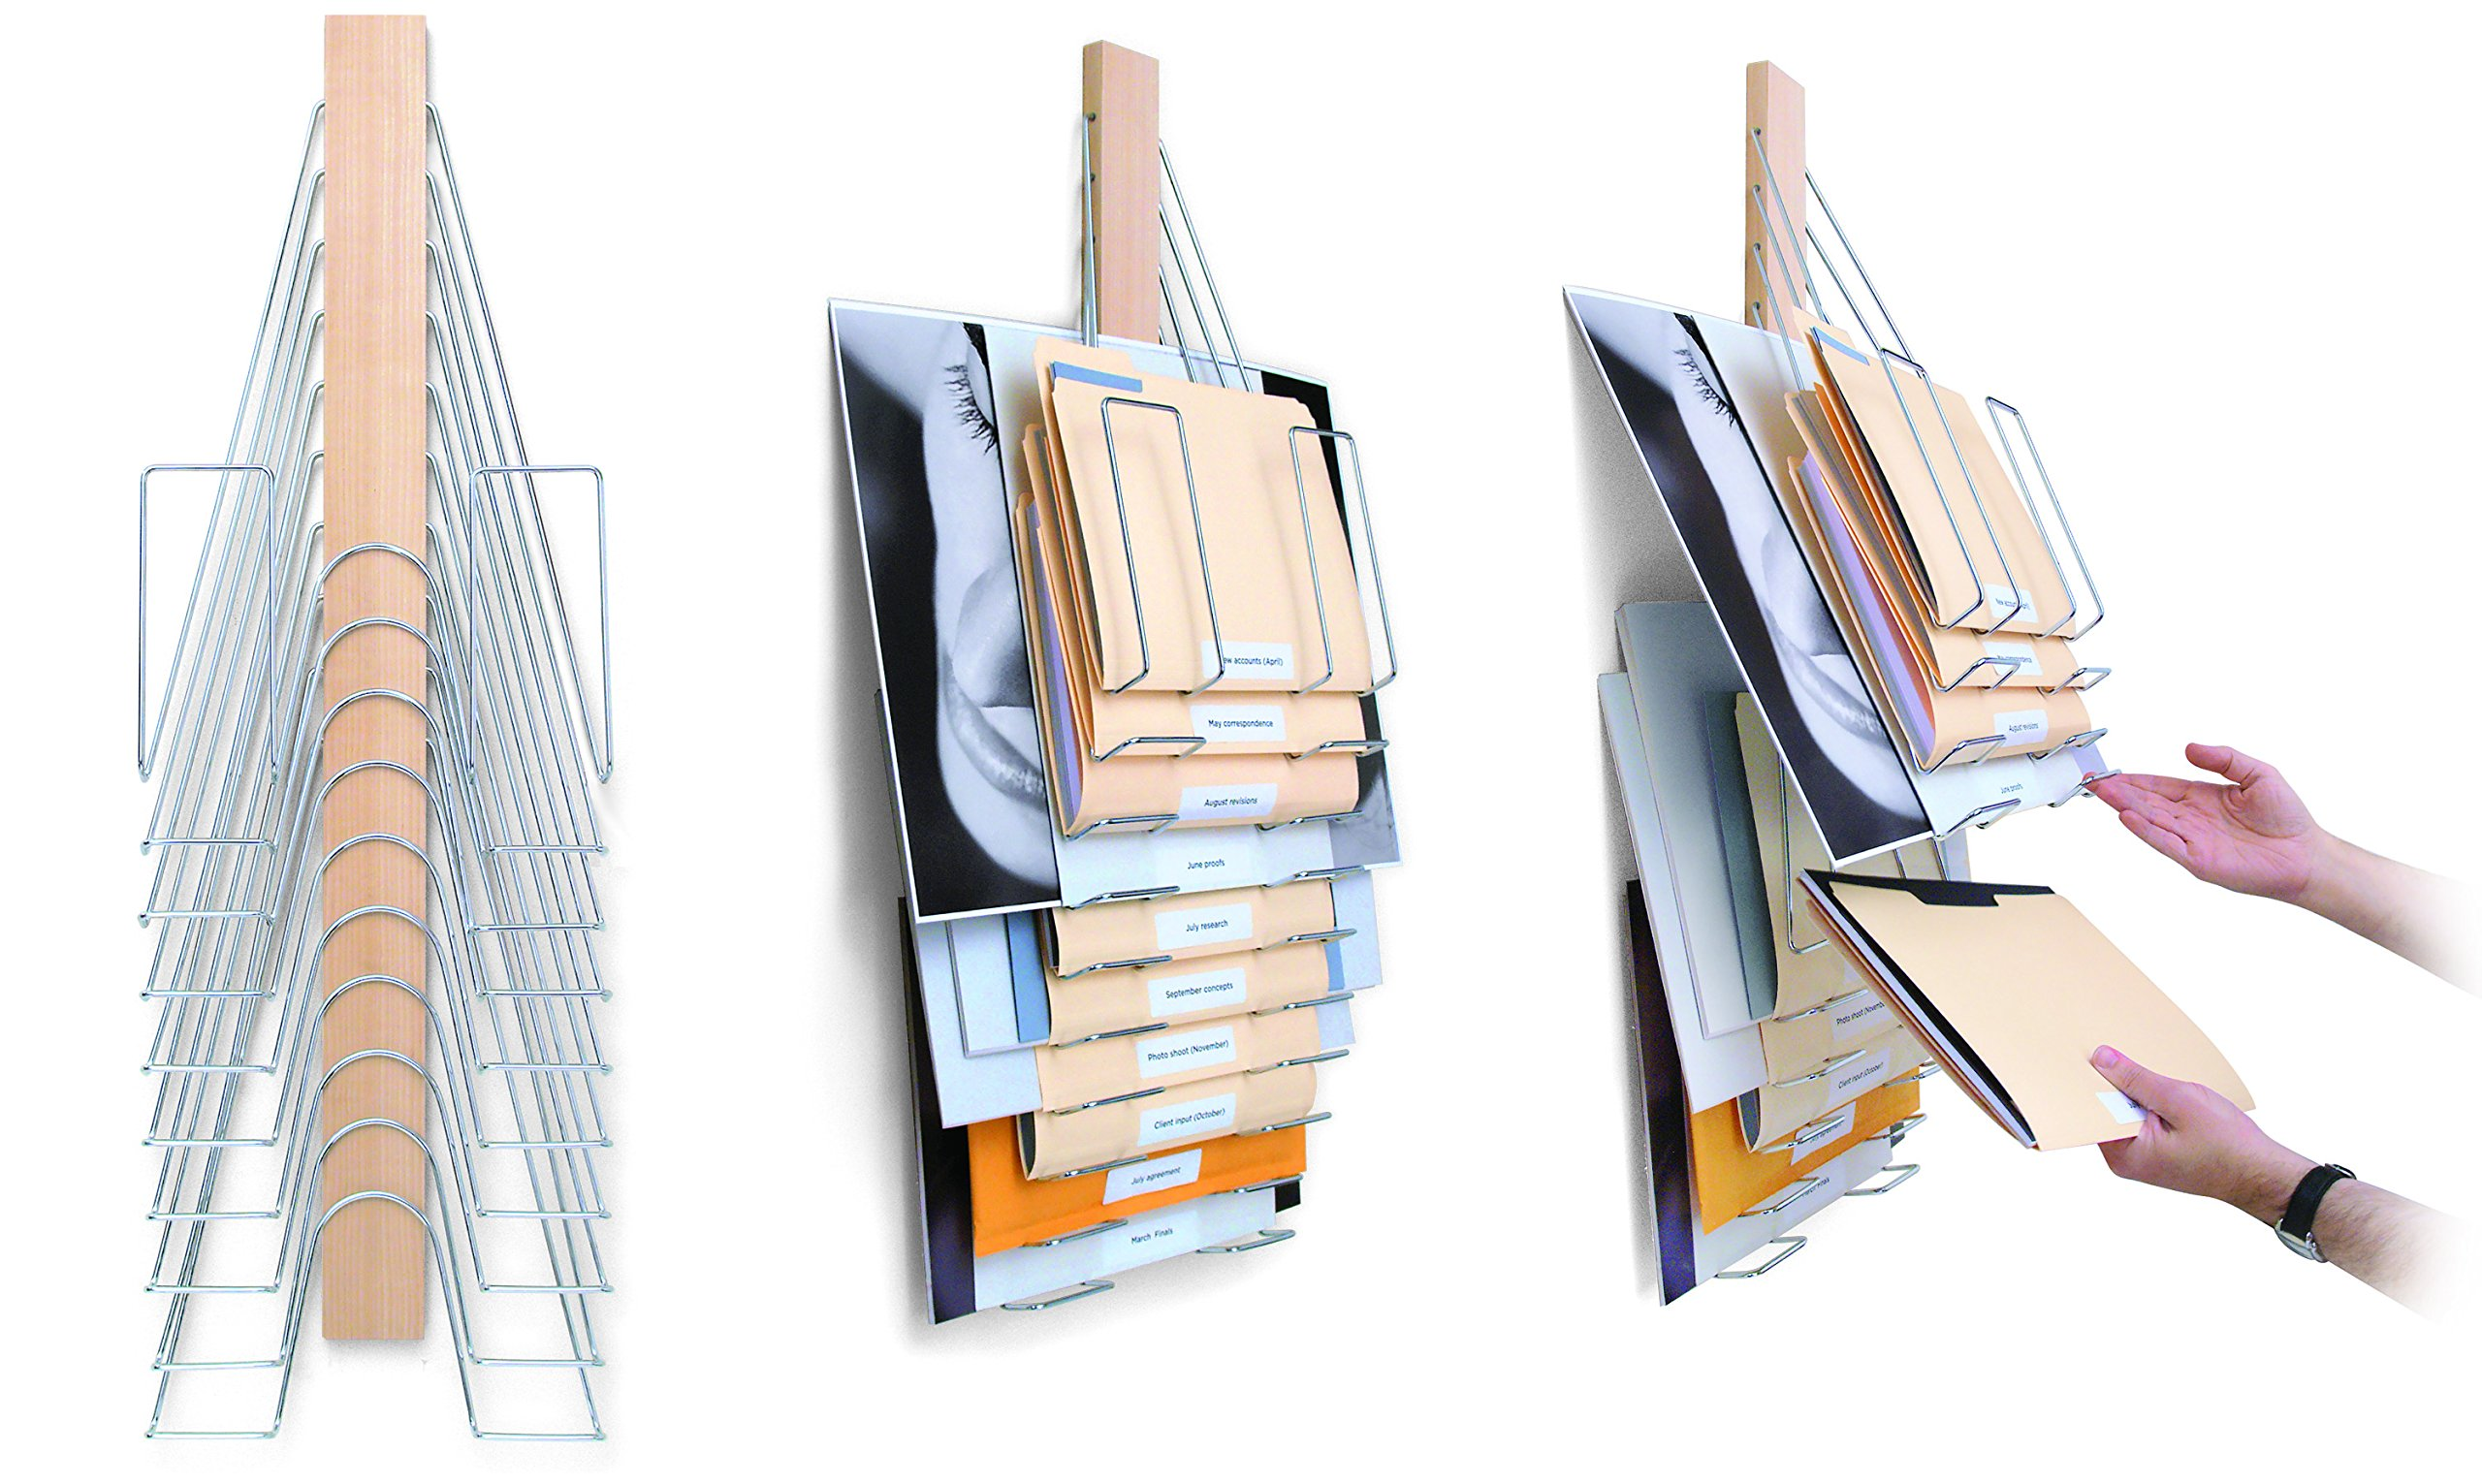 Up Filer Original, Hanging Wall File, 10 Hangers/Pockets. Allows for Letter/Legal/Oversized